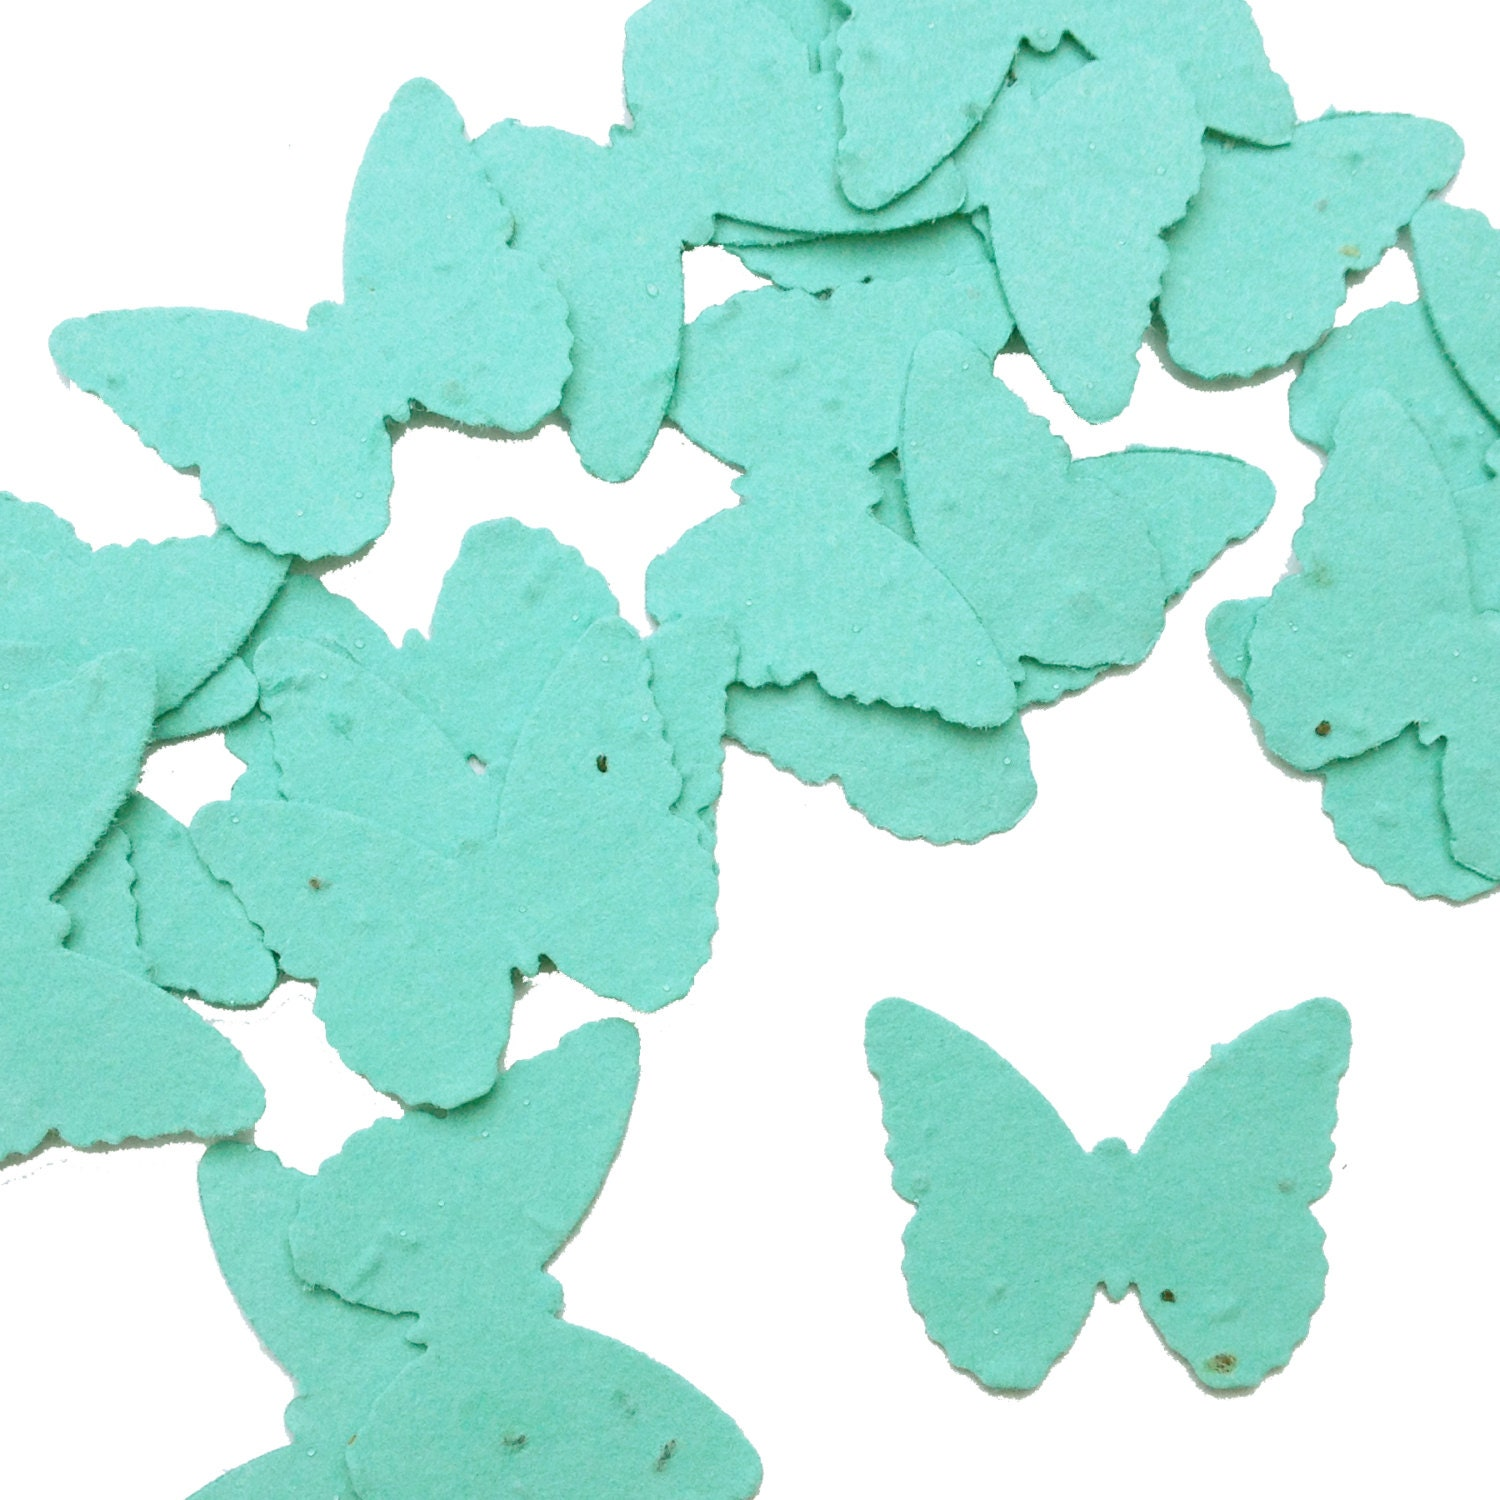 Aqua Blue Butterfly Shaped Plantable Seed Paper Confetti